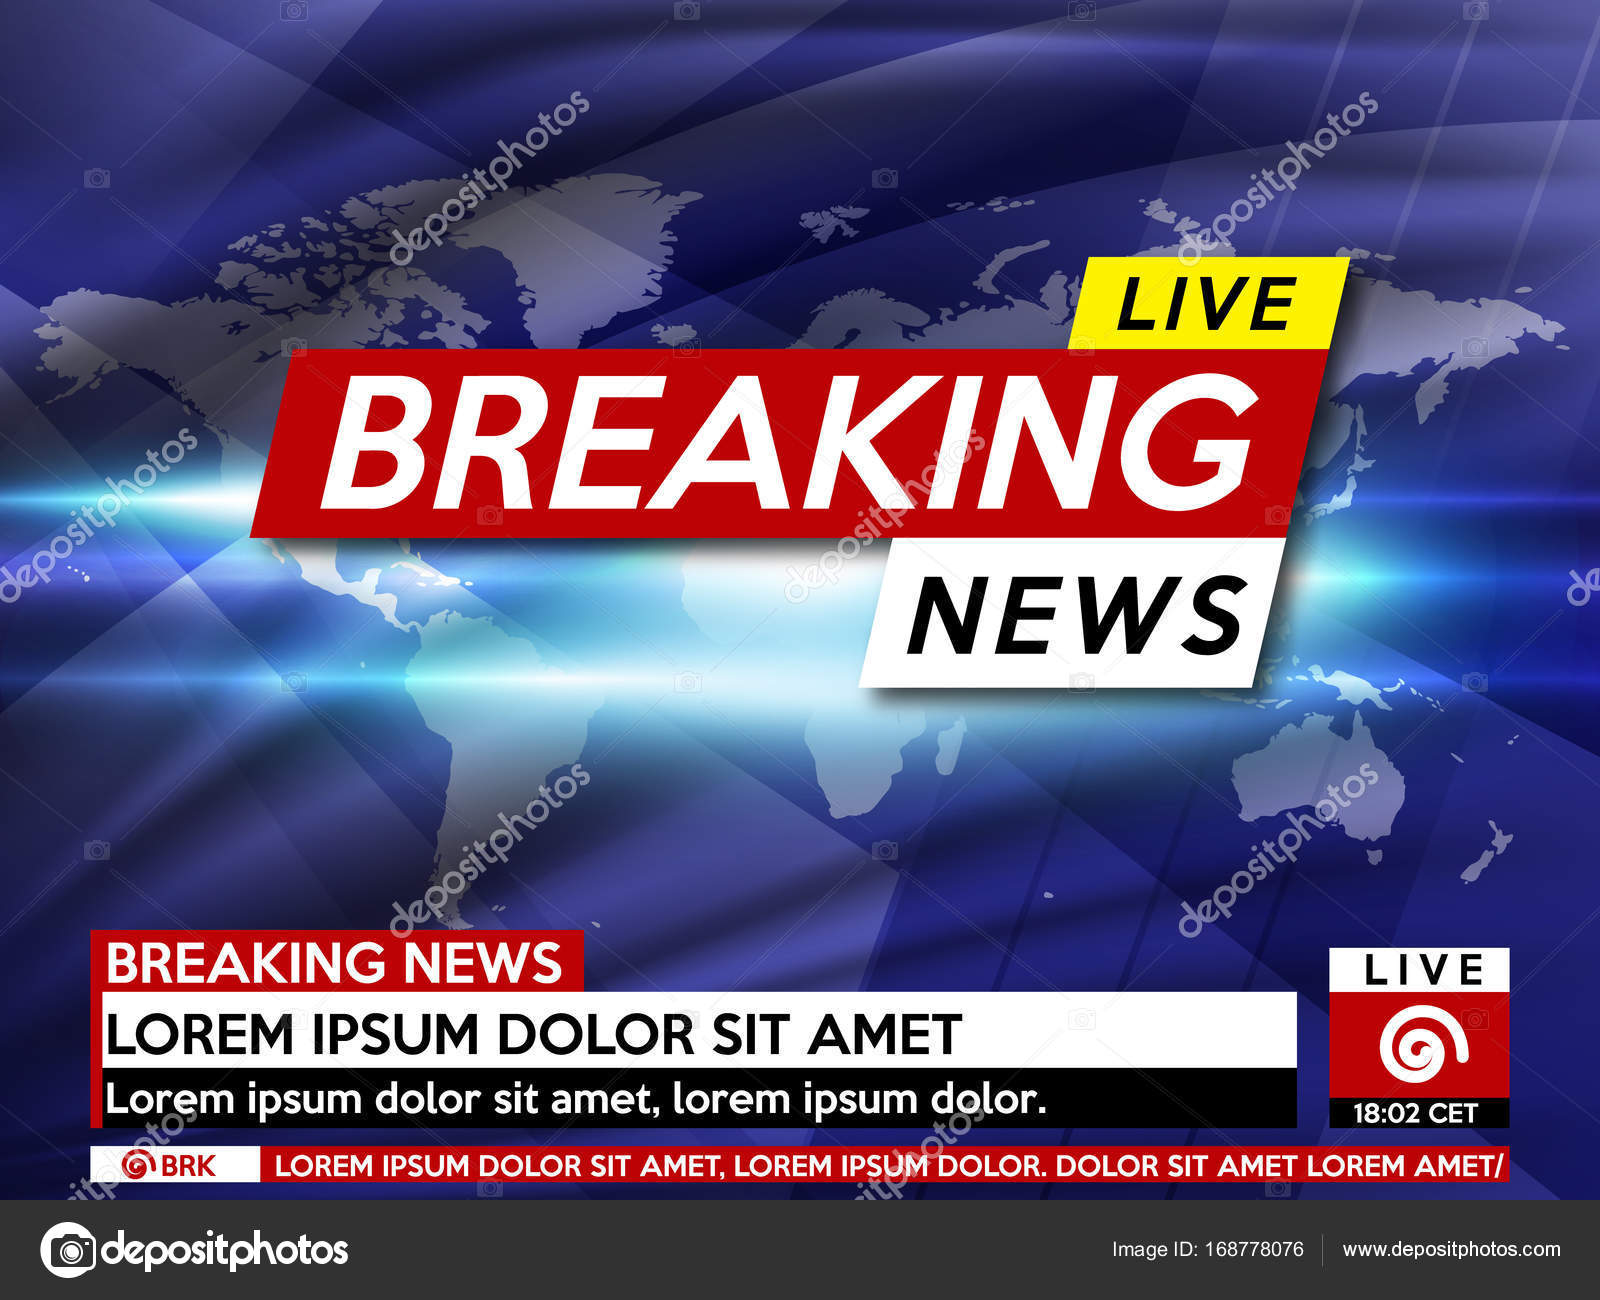 Background Screen Saver On Breaking News Live World Map Vector Illustration By AngelMax